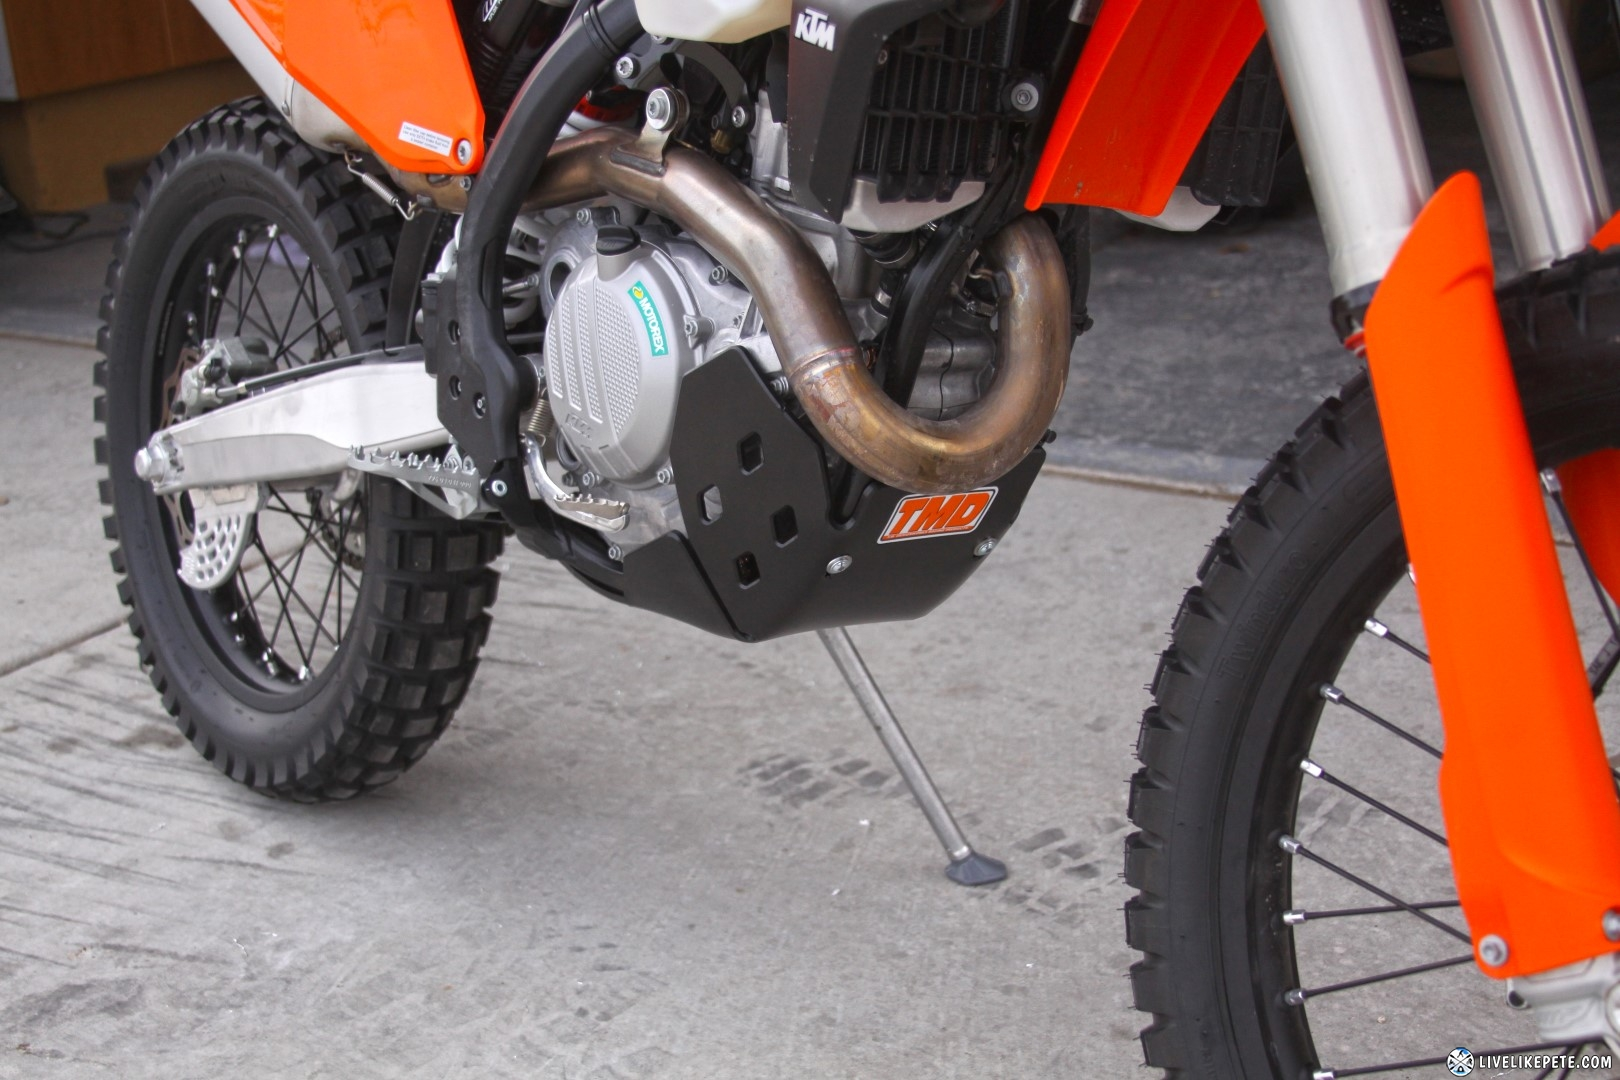 17 Ktm 500 Exc F Build Up Freeride 250 Wiring Diagram Cyra Handguards And Sicass Deflectors W Led Turn Signals